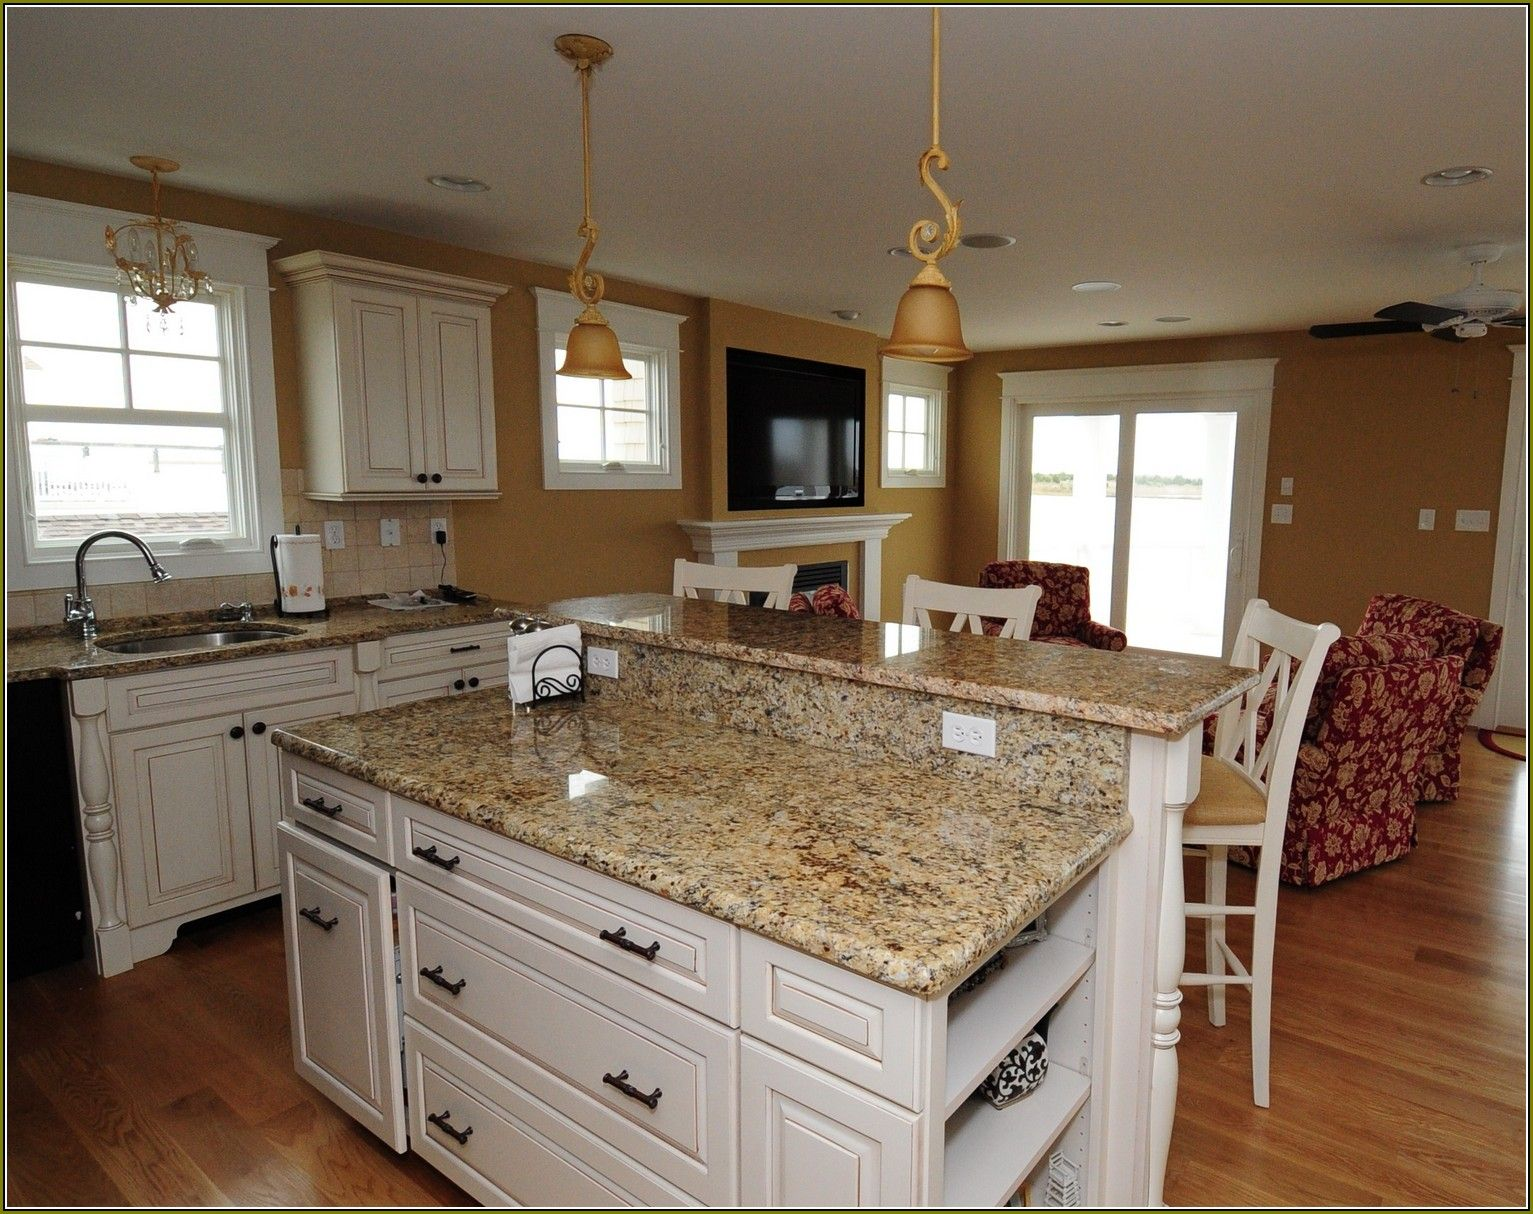 White Kitchen Cabinets With Granite Countertops Photos White Cabinets With Granite White Cabinets White Countertops White Kitchen Cabinets